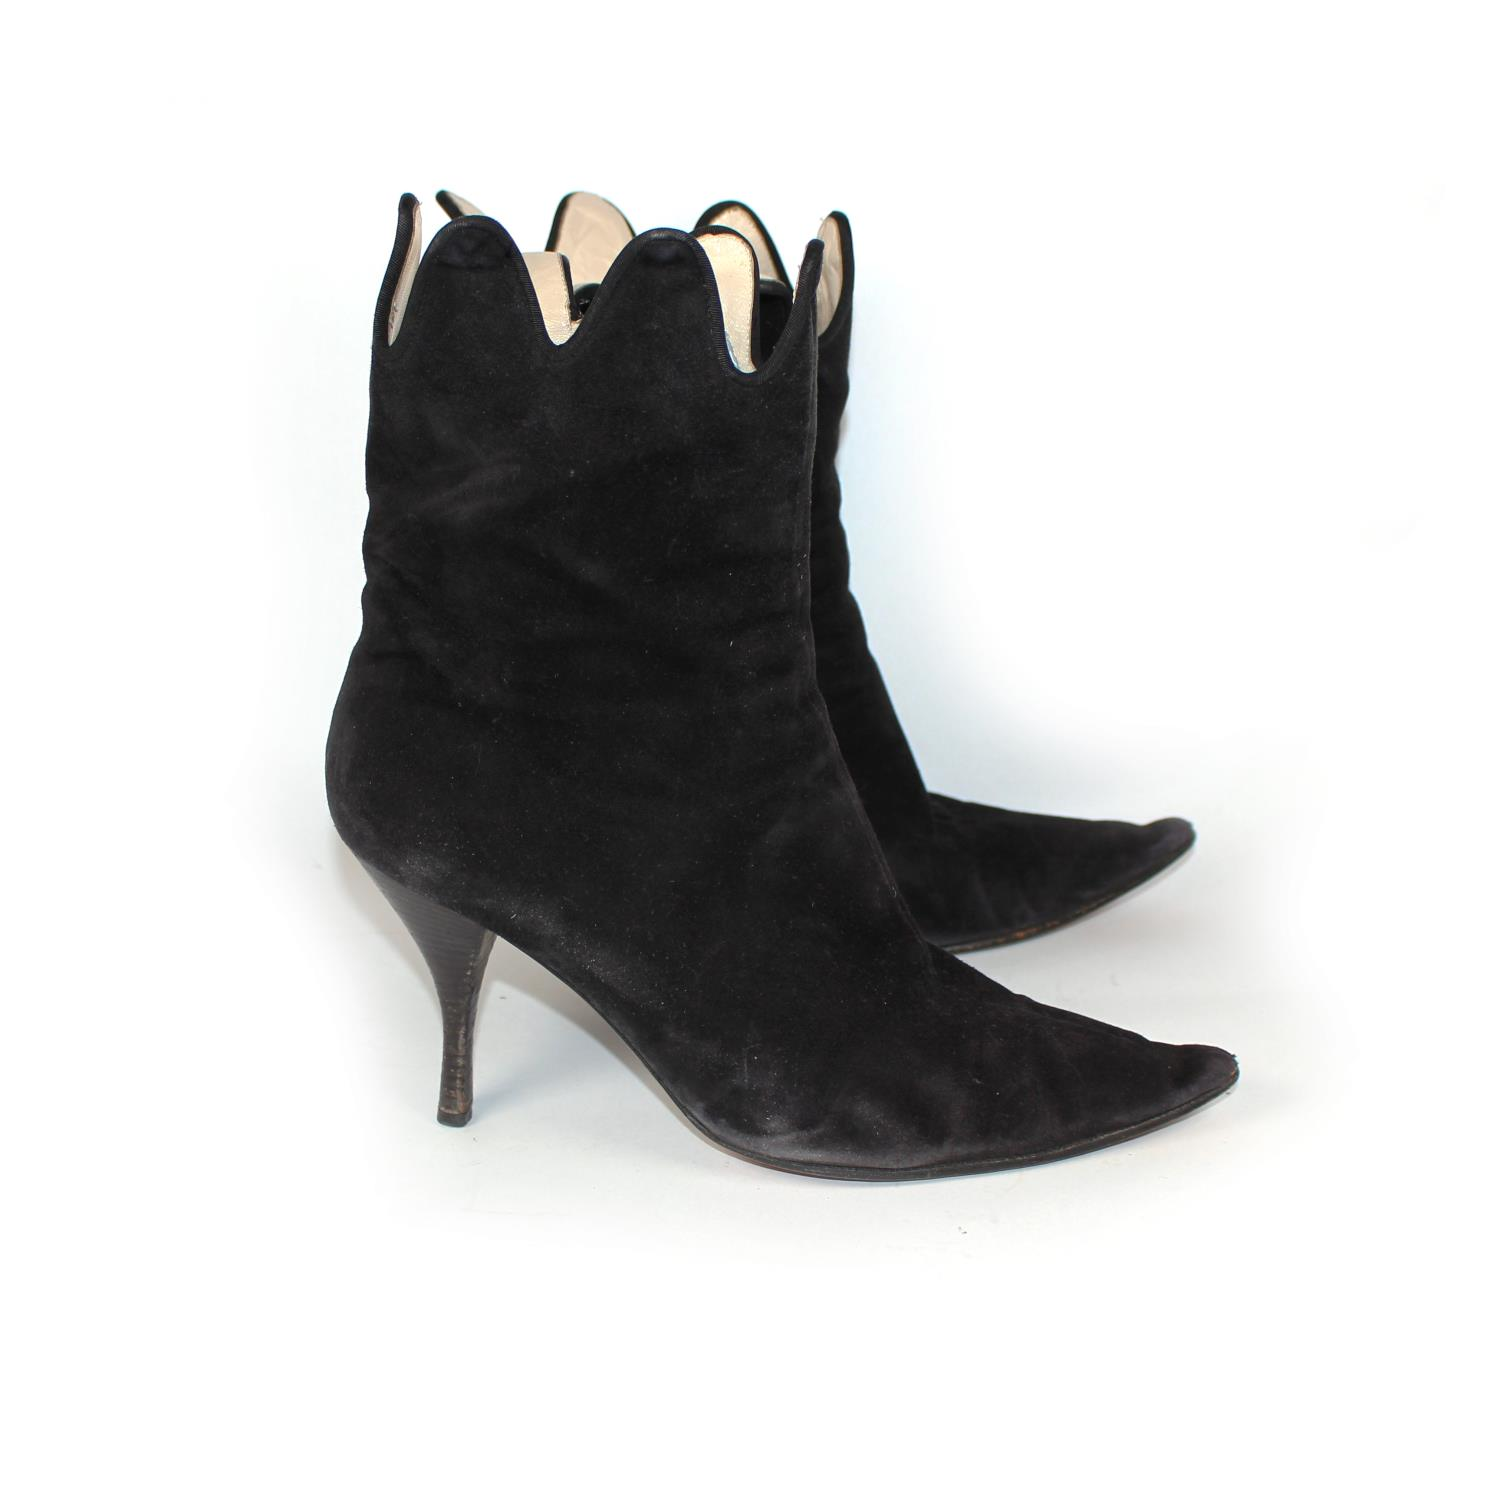 Lot 14 - VIVENNE WESTWOOD, BLACK SUEDE ANKLE BOOTS With side zip, scalloped edge and pointed toe (size